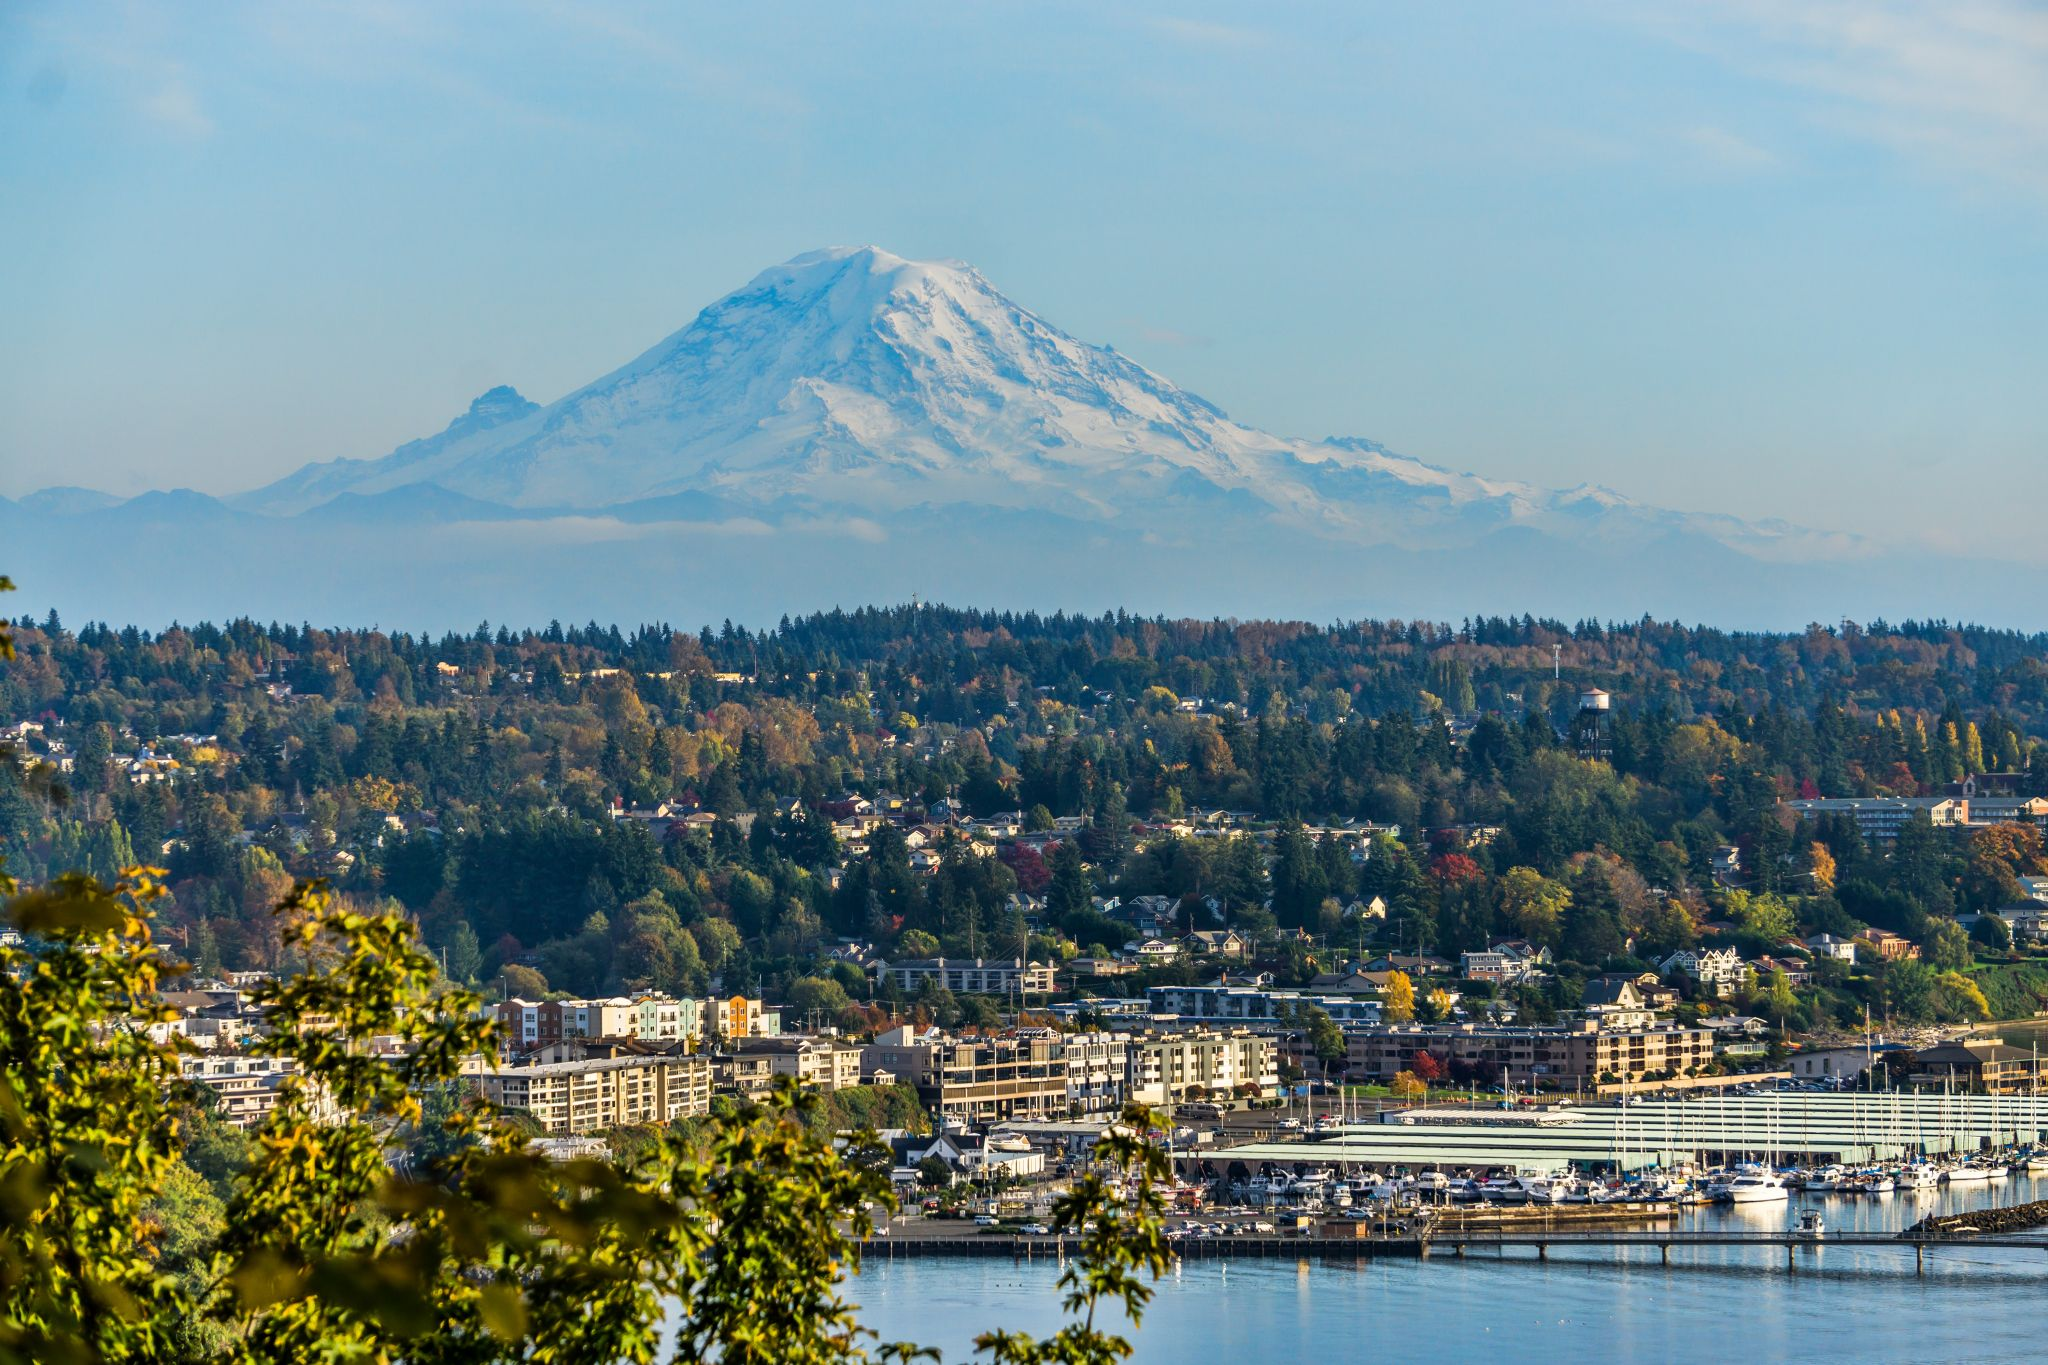 Looking to buy a home south of Seattle? Here's what you need to know